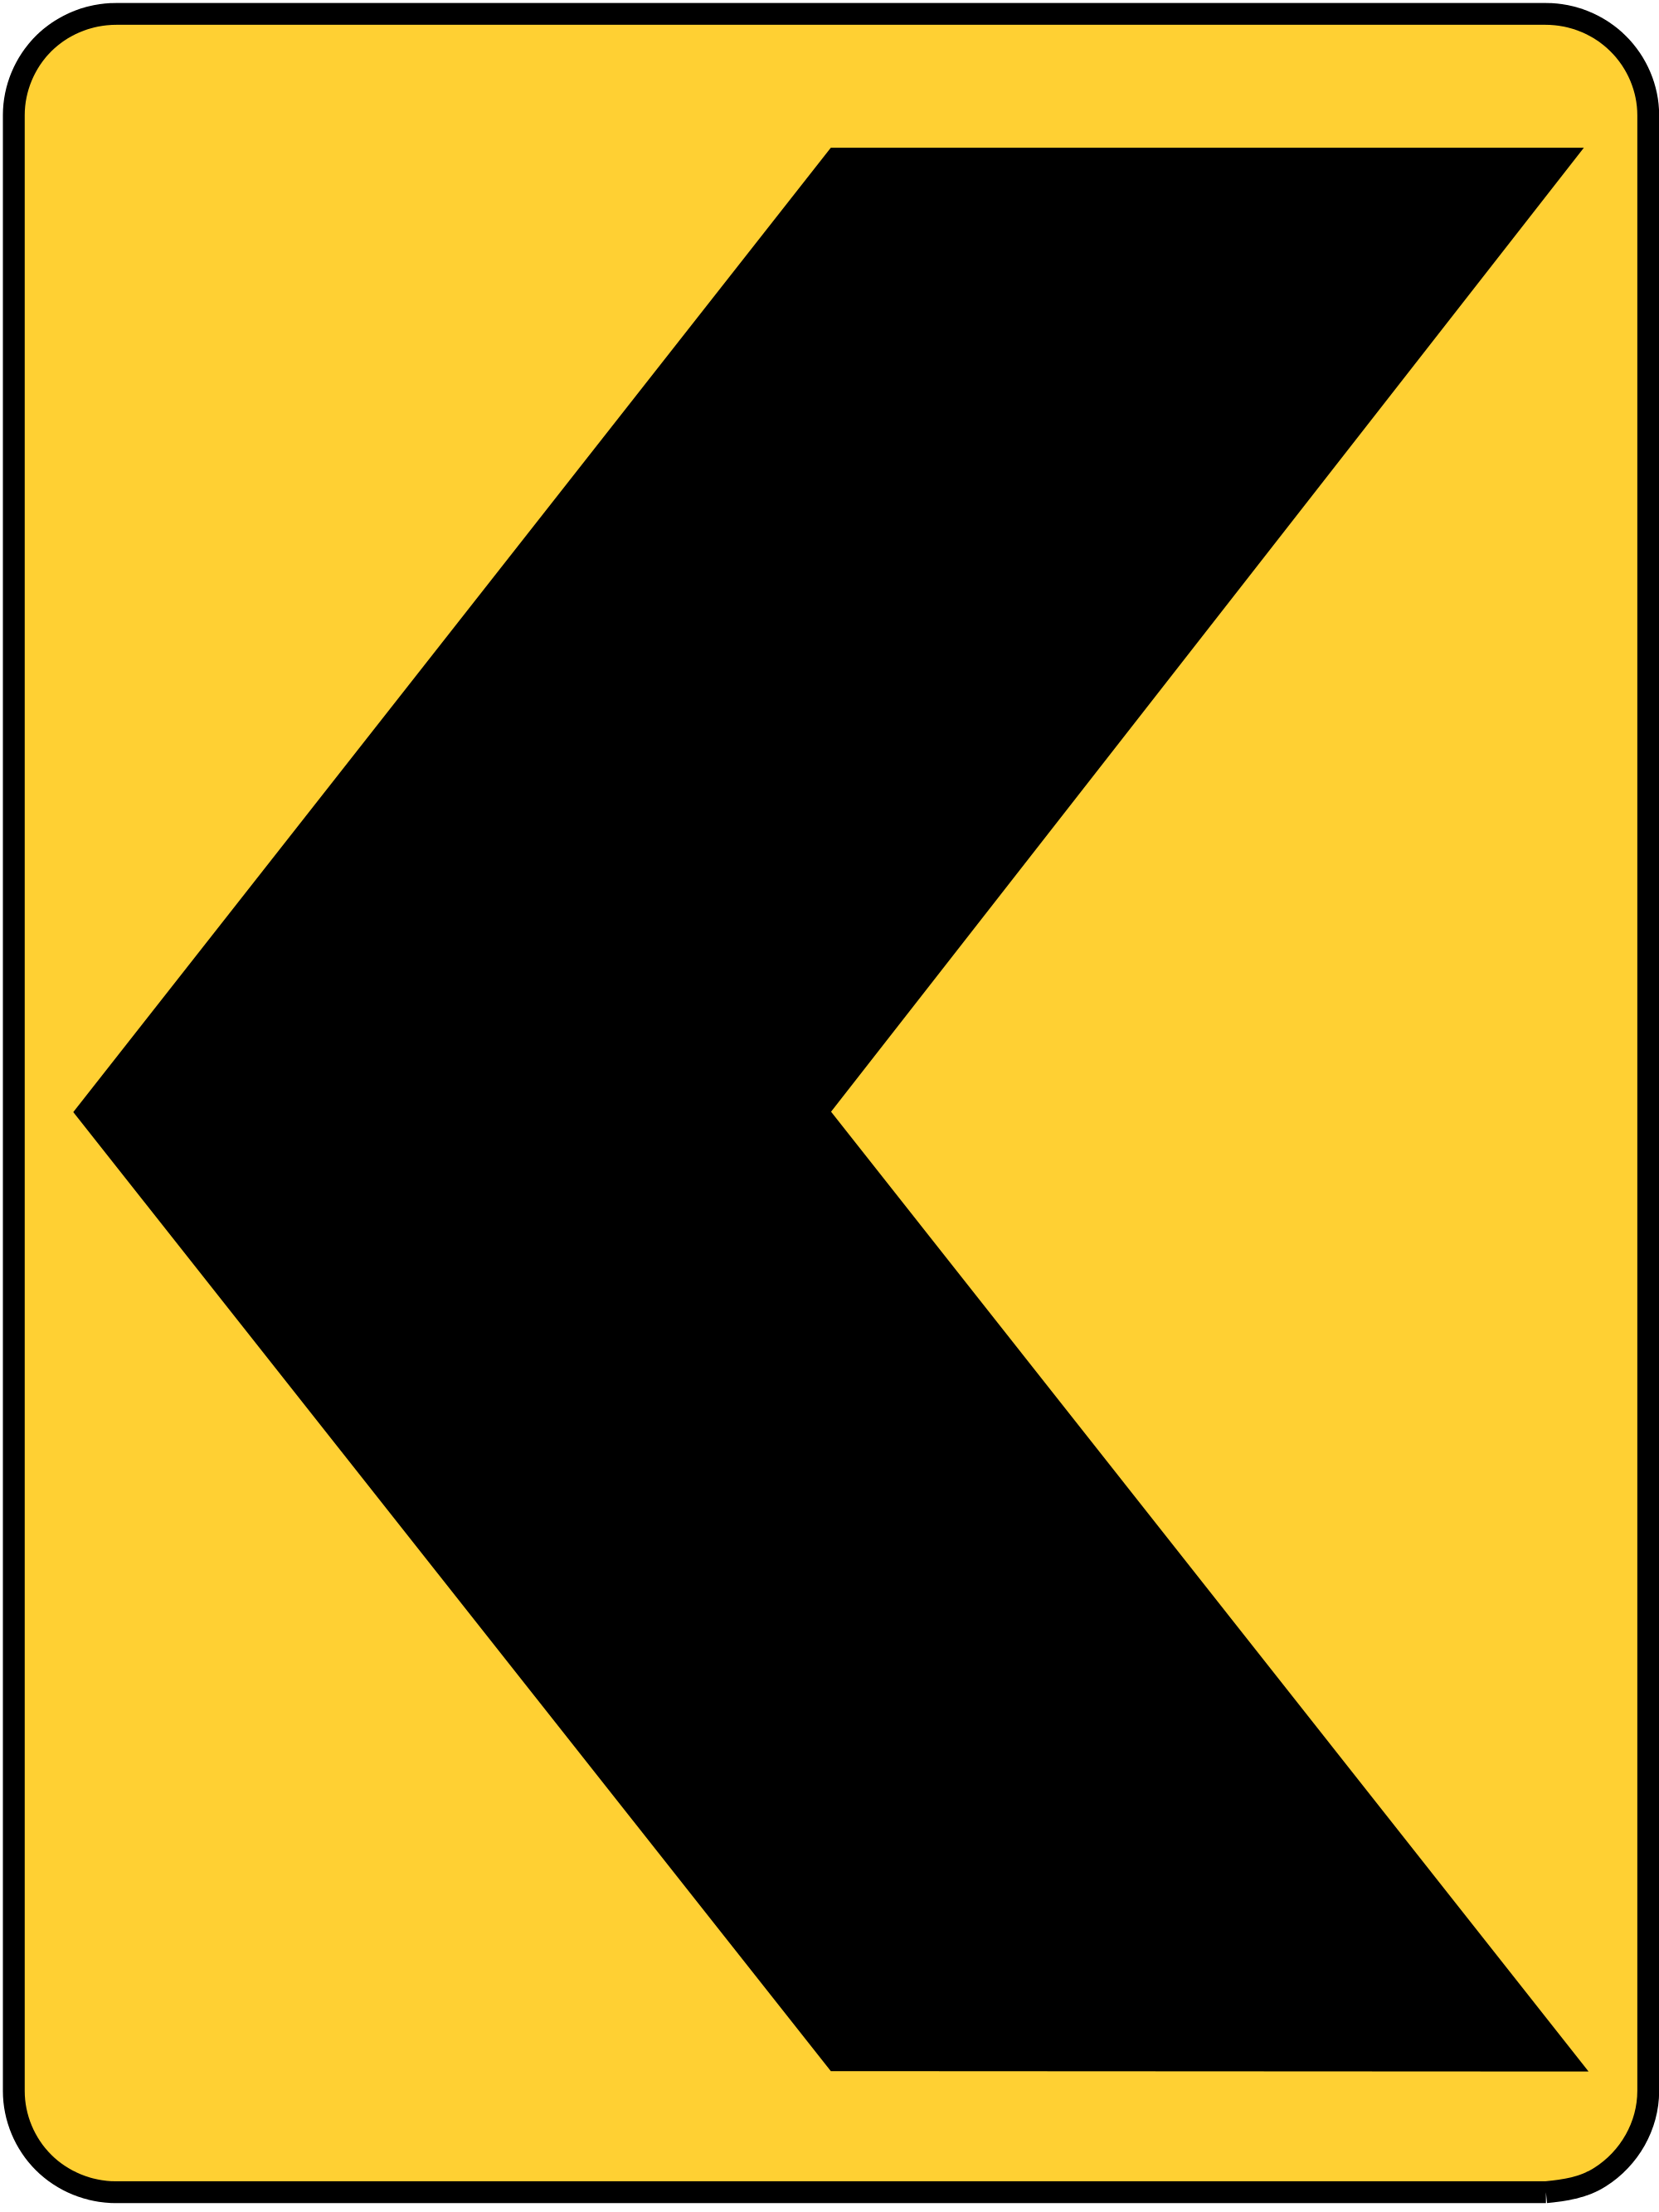 W1-8L Warning Sign